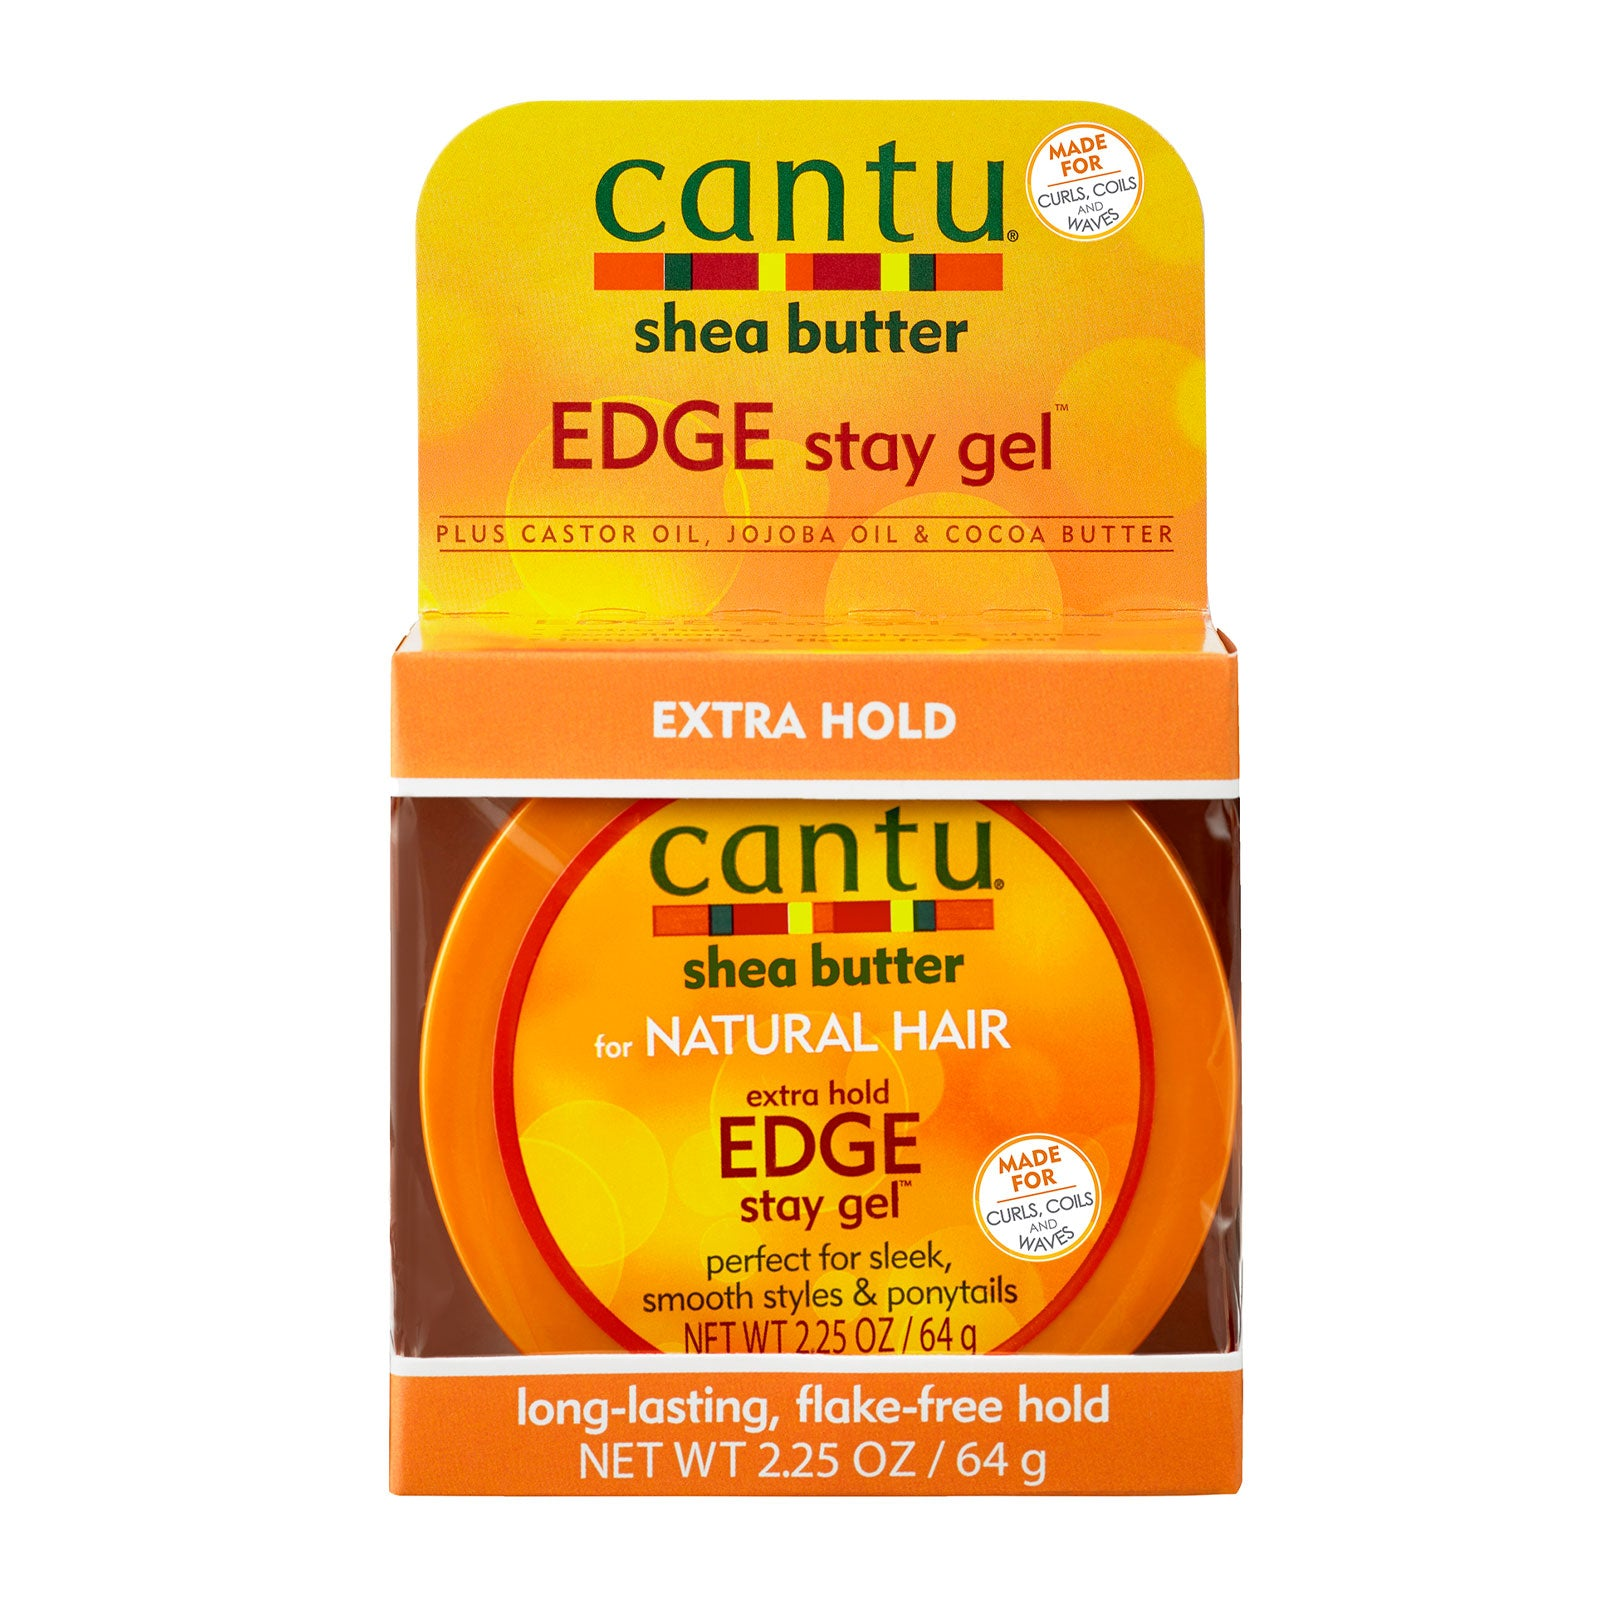 Cantu Shea Butter For Natural Hair Extra Hold Edge Stay Gel 64g